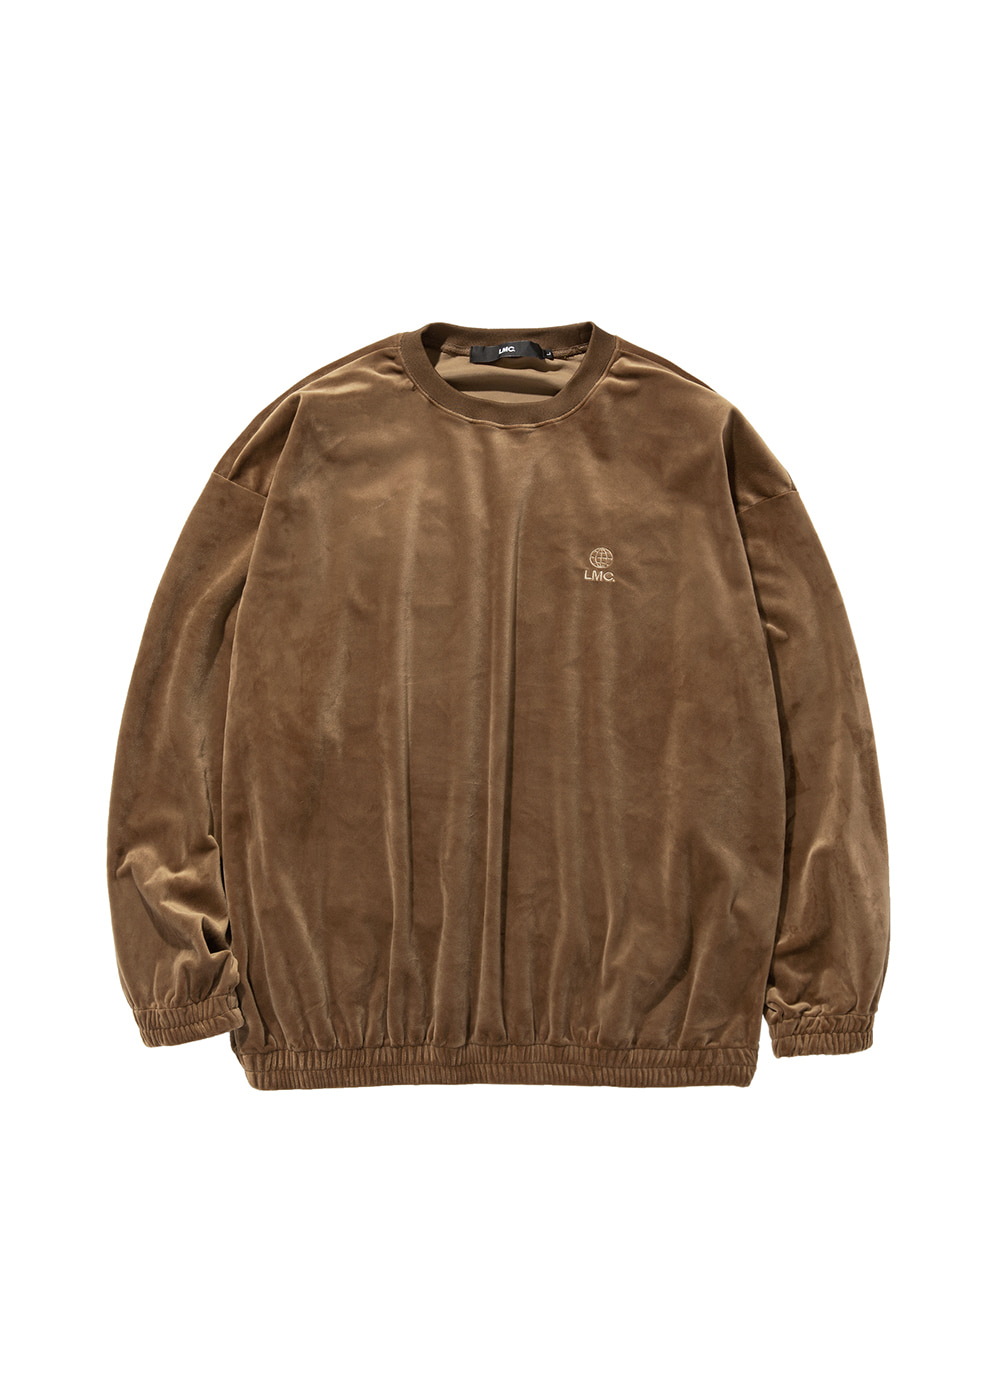 LMC VELOUR OVERSIZED SWEATSHIRT brown